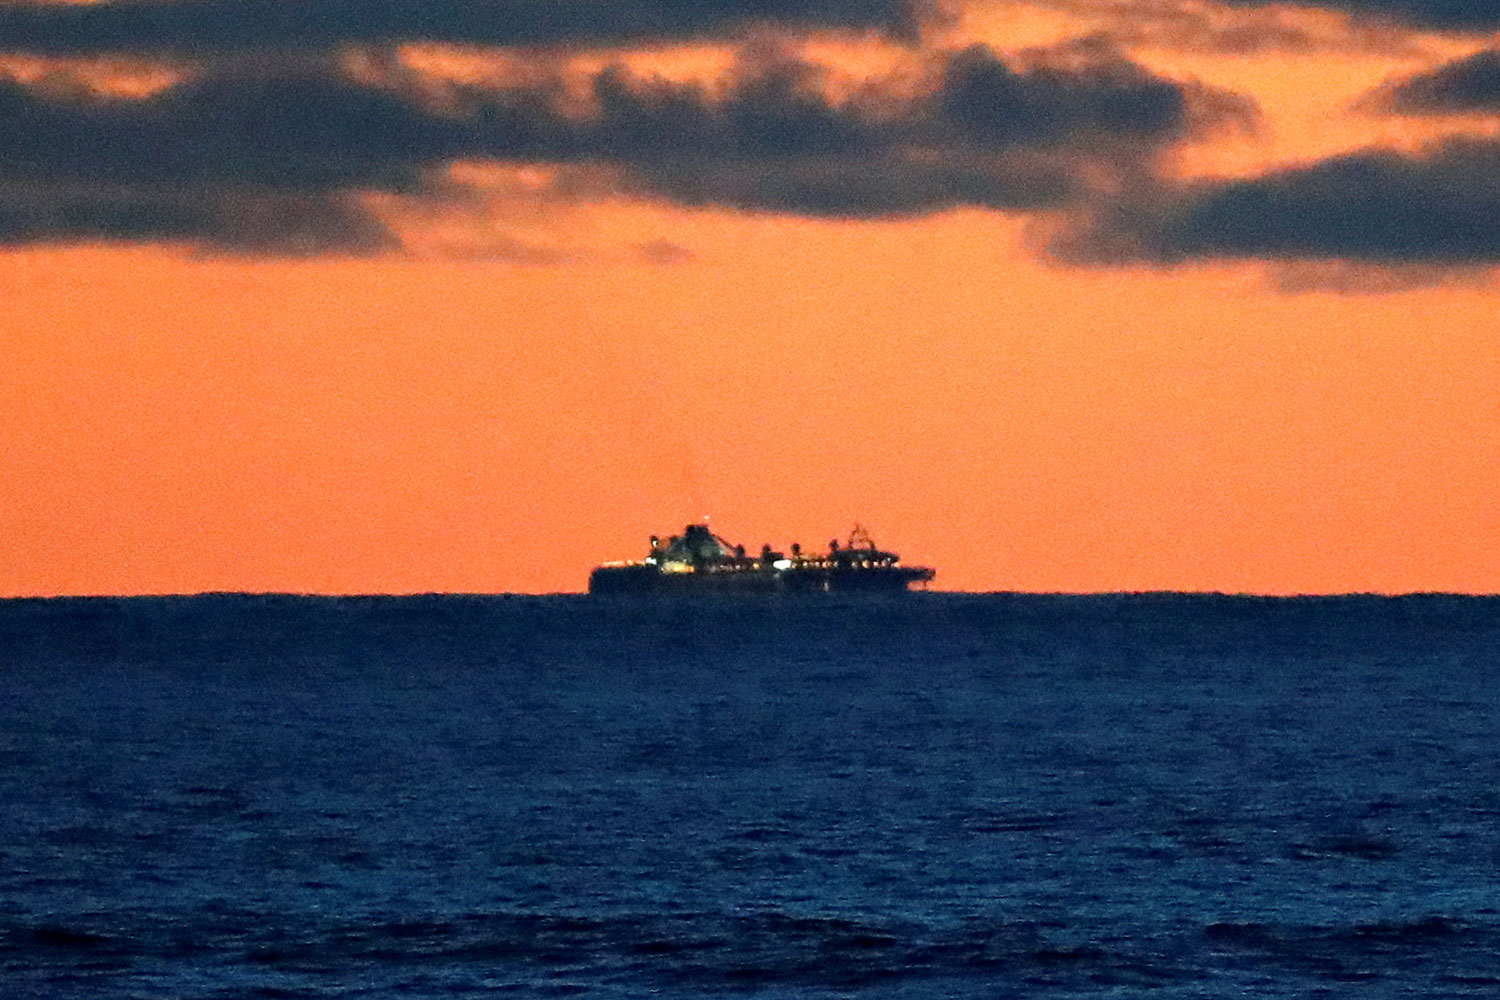 The photo is an open ocean shot of the large cruise ship far off in the distance against a brilliant sunset.